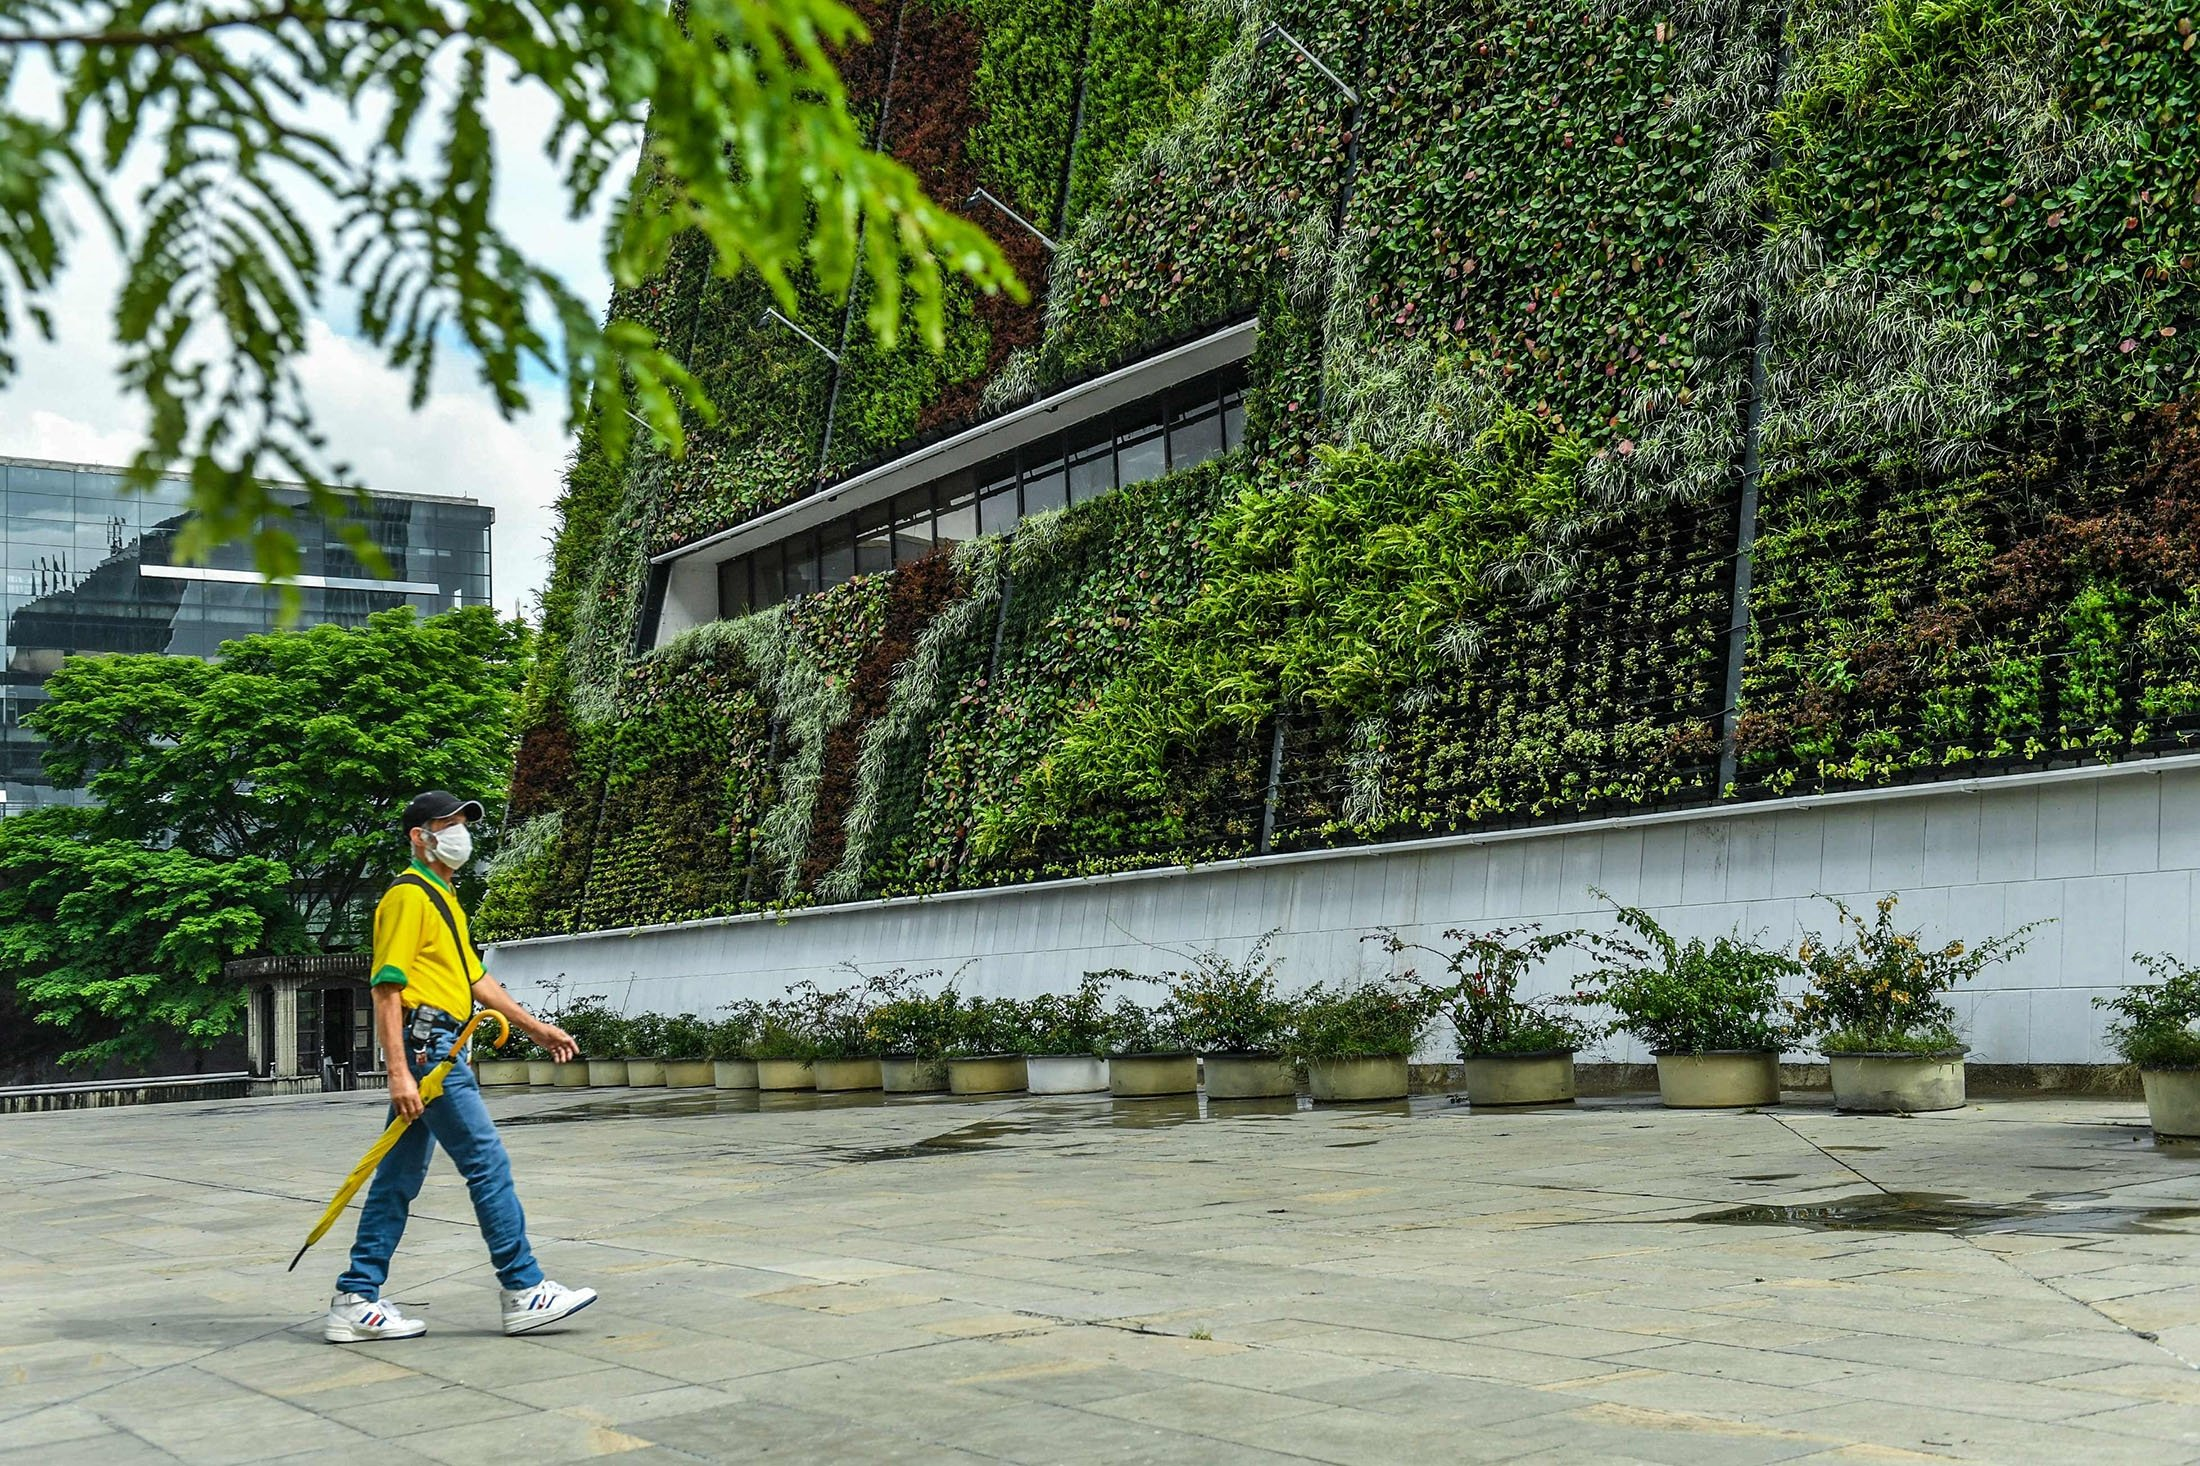 A man walks near the vertical garden of a building at the Alpujarra sector in downtown Medellin, Colombia, June 15, 2021. (AFP Photo)